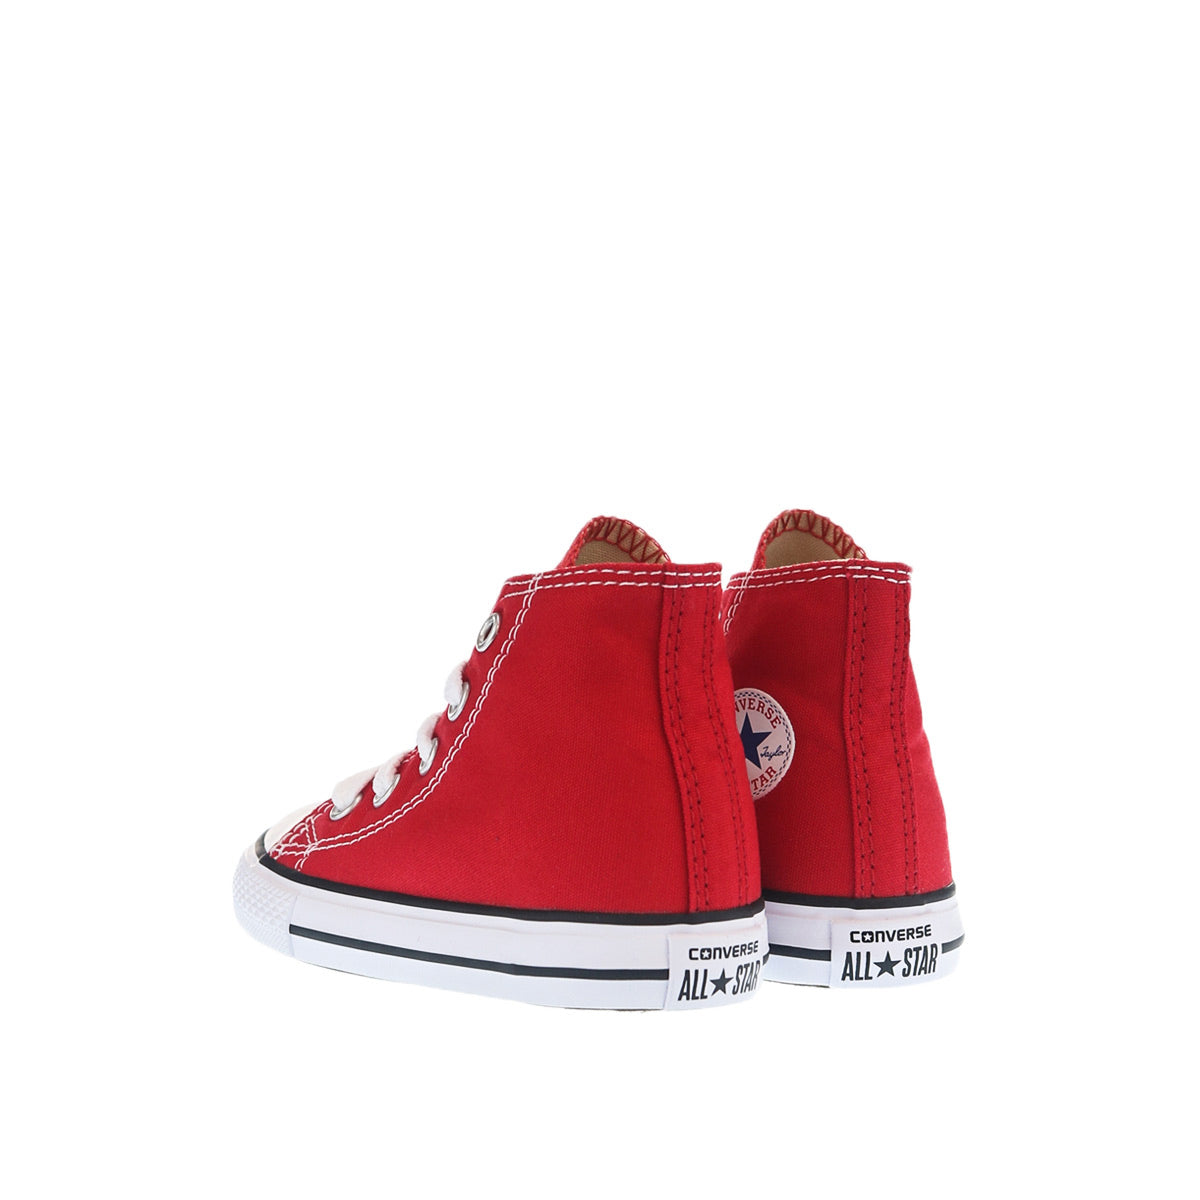 Converse All Star Chucks Hi Canvas 7J232C-